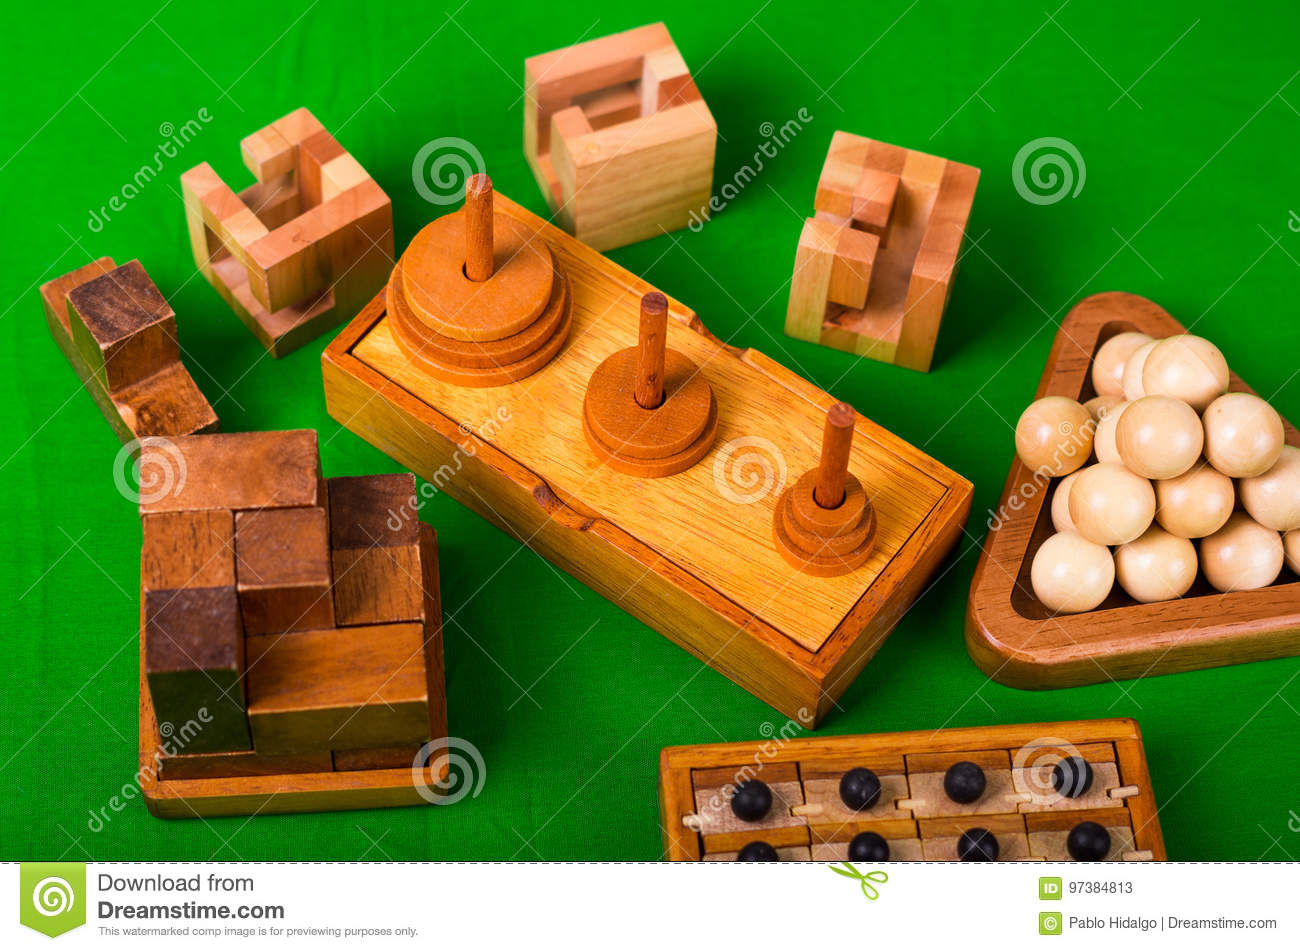 Assorted Wooden Brain Teaser Or Wooden Puzzles On Green